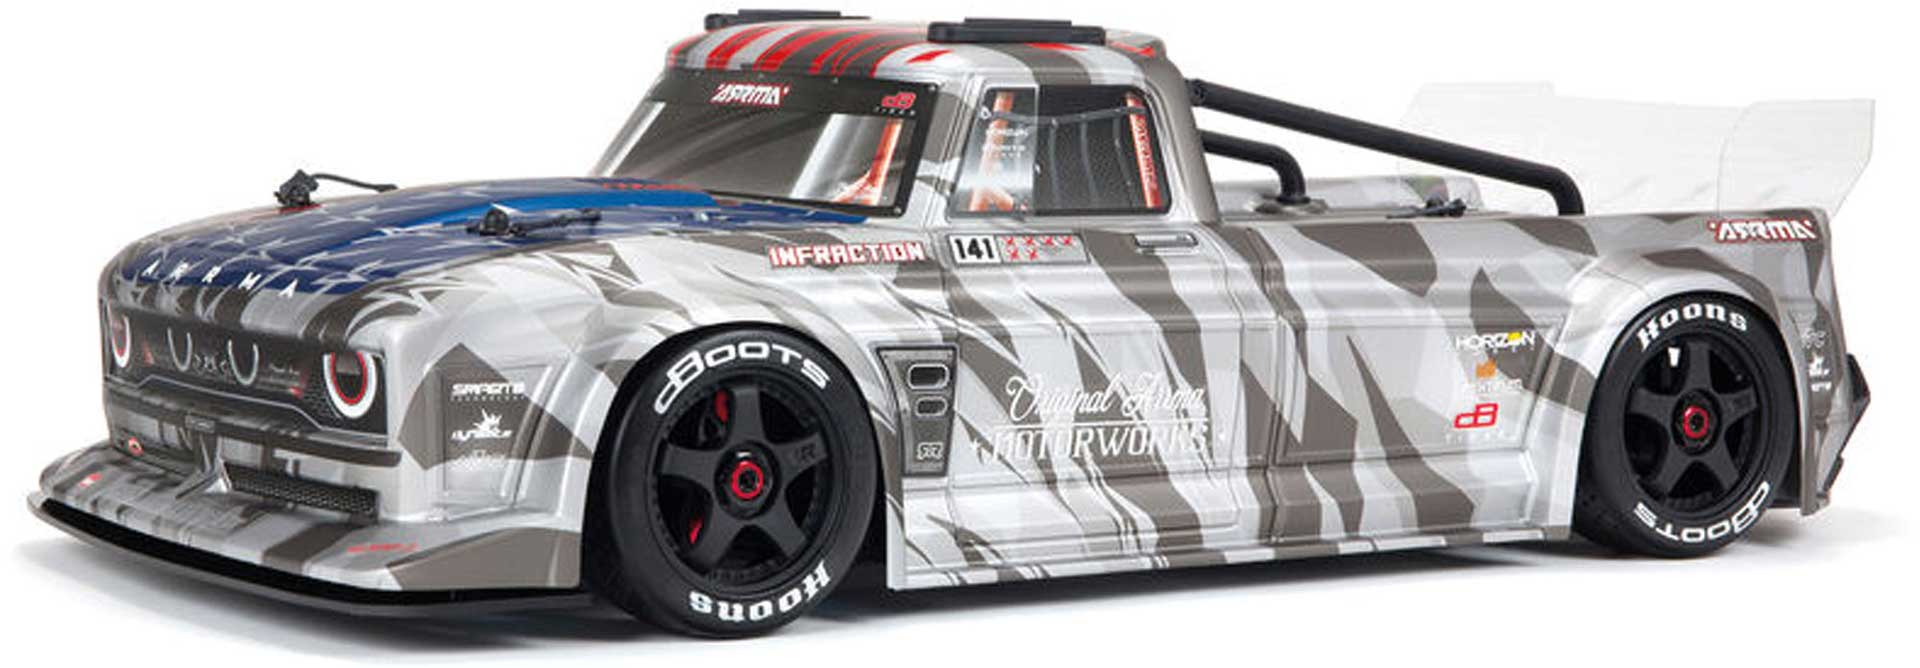 Arrma INFRACTION 6S BLX 1/7 All-Road Truck Silver